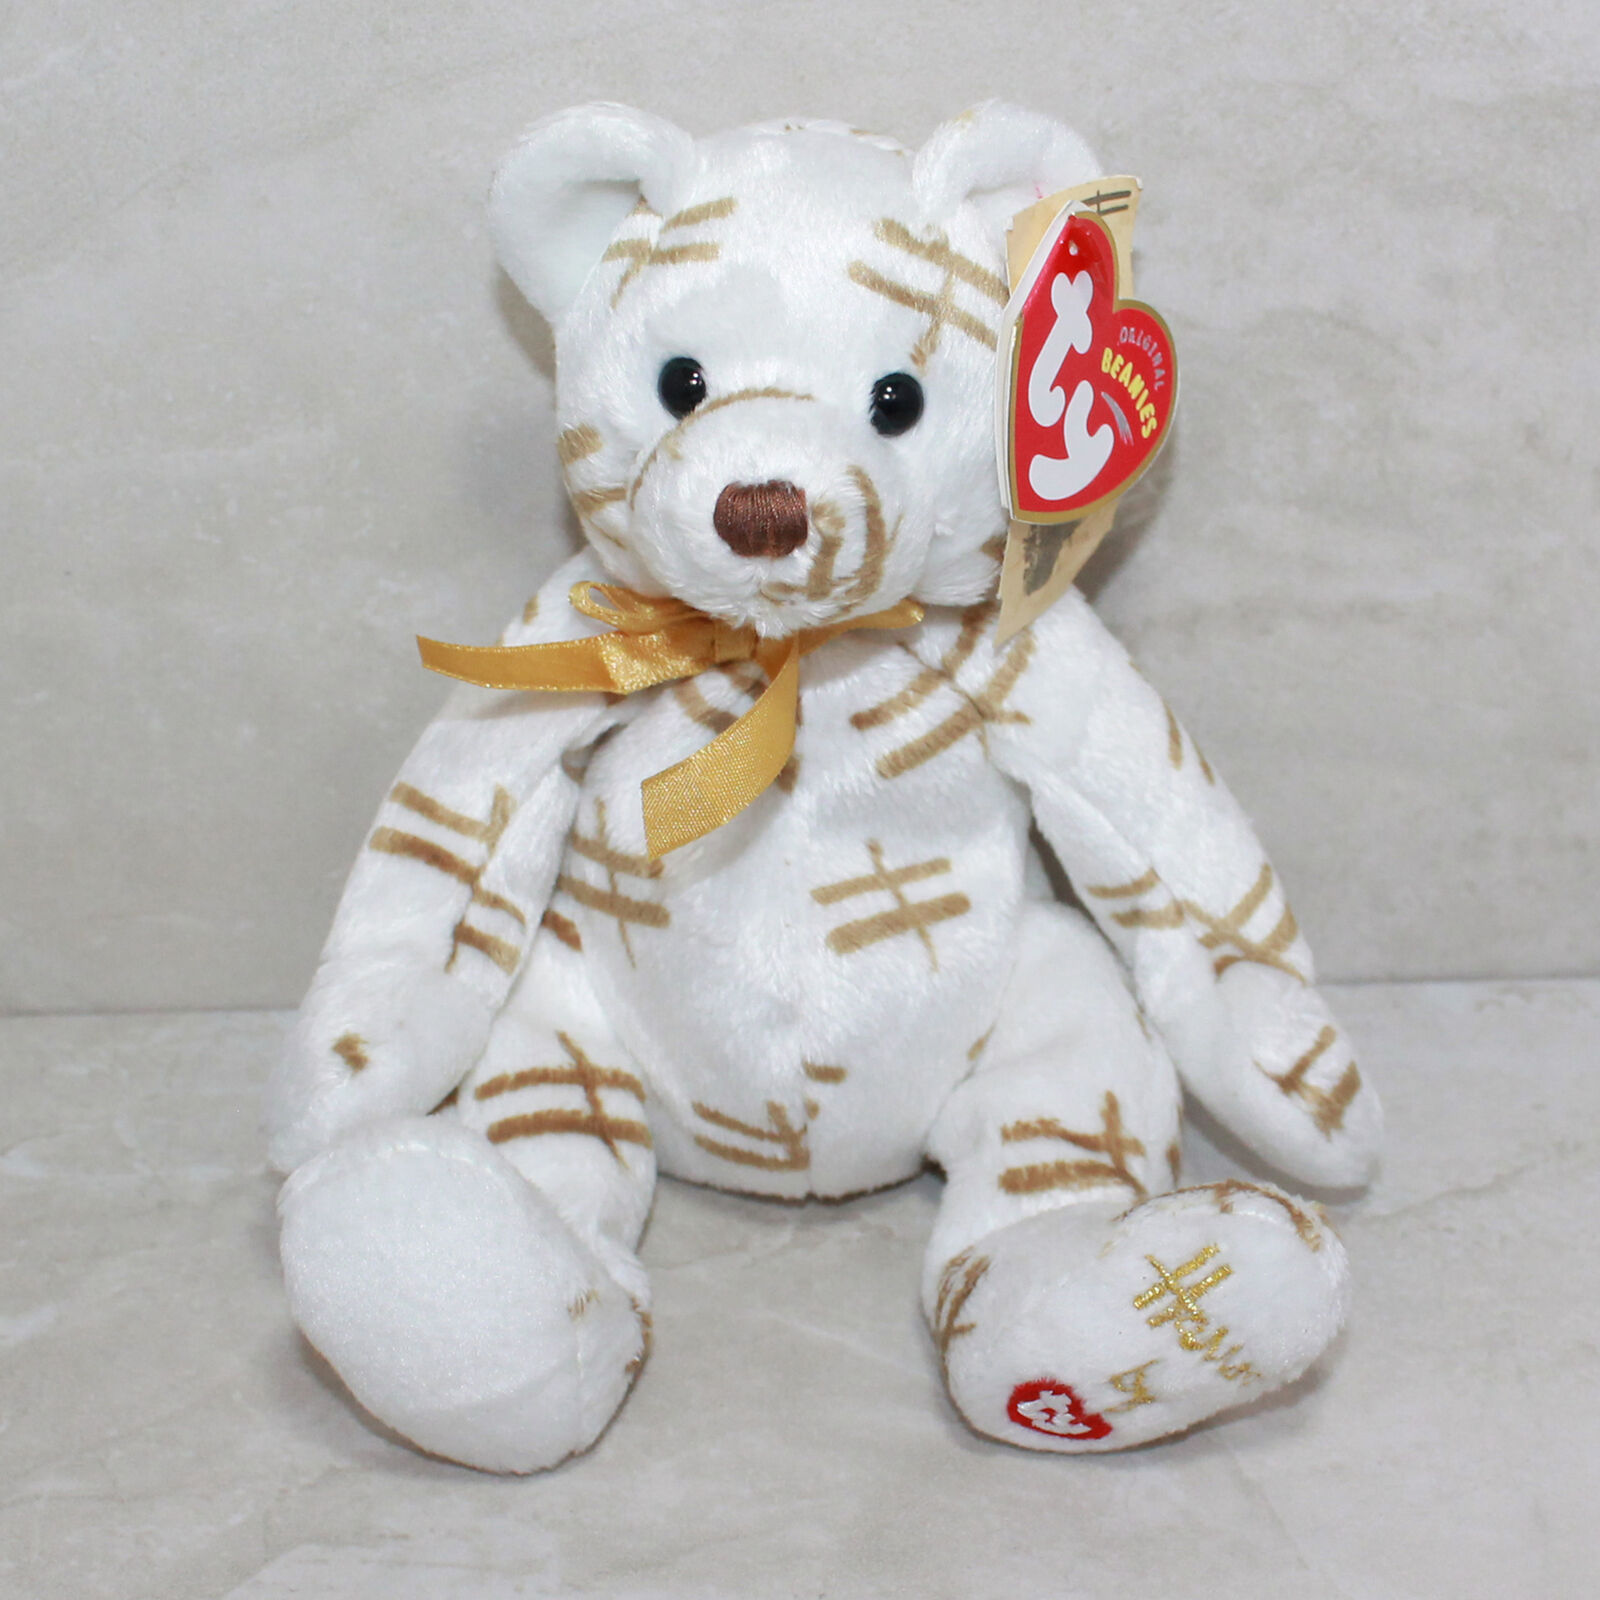 Ty Beanie Baby Starlight - MWMT (Bear White Harrods UK Country Exclusive)